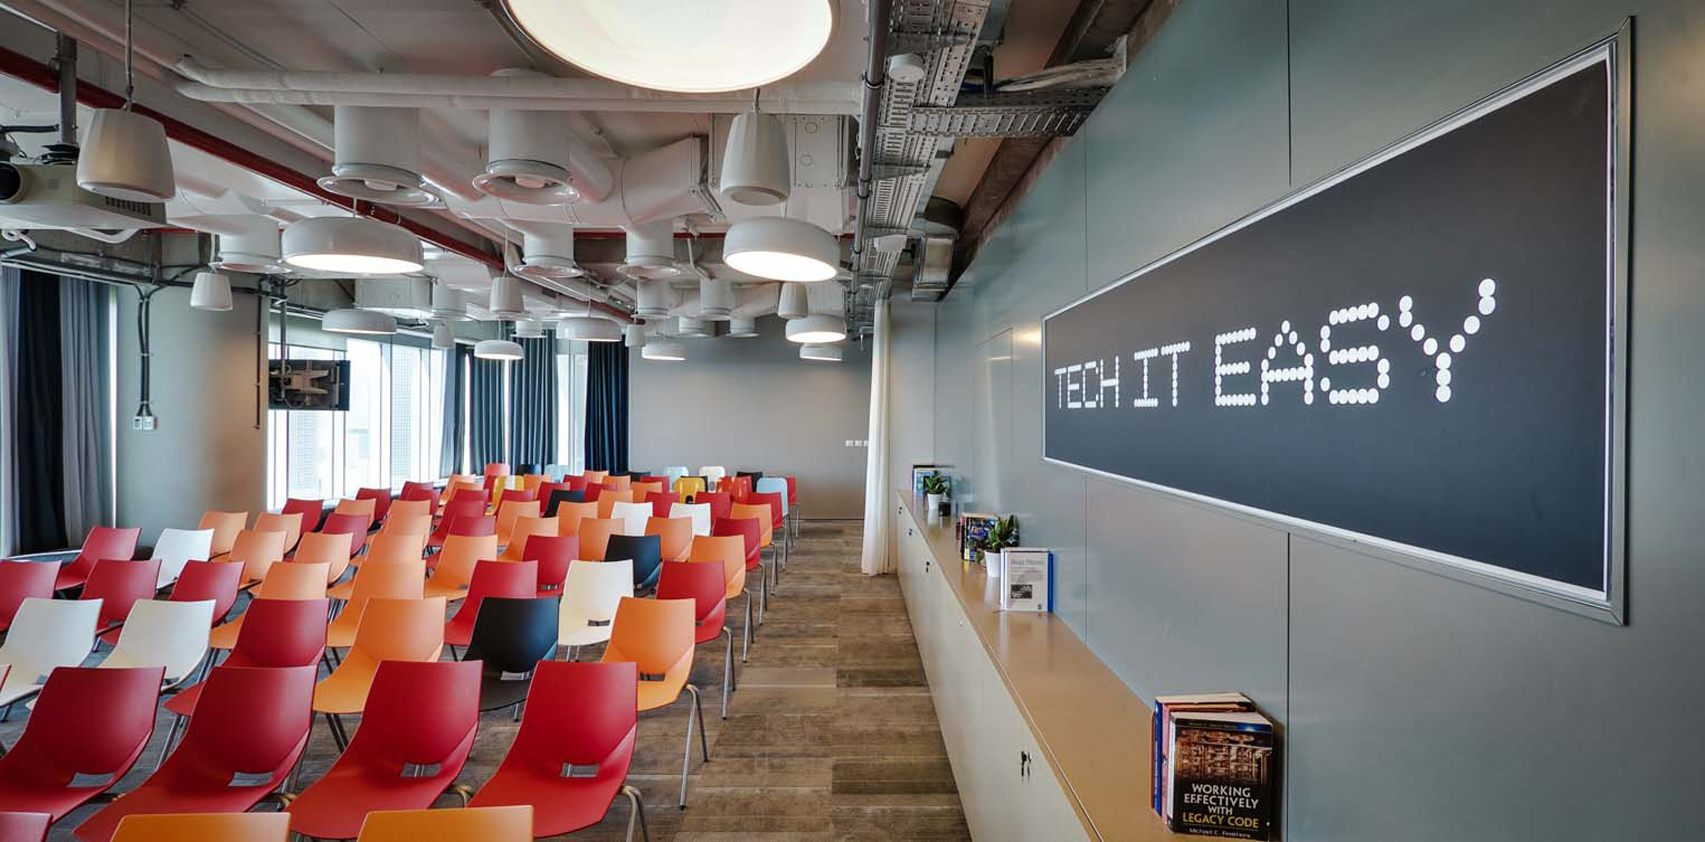 googles tel hdrtist hdr http wwwohanawarecom hdrtist branching google tel aviv office